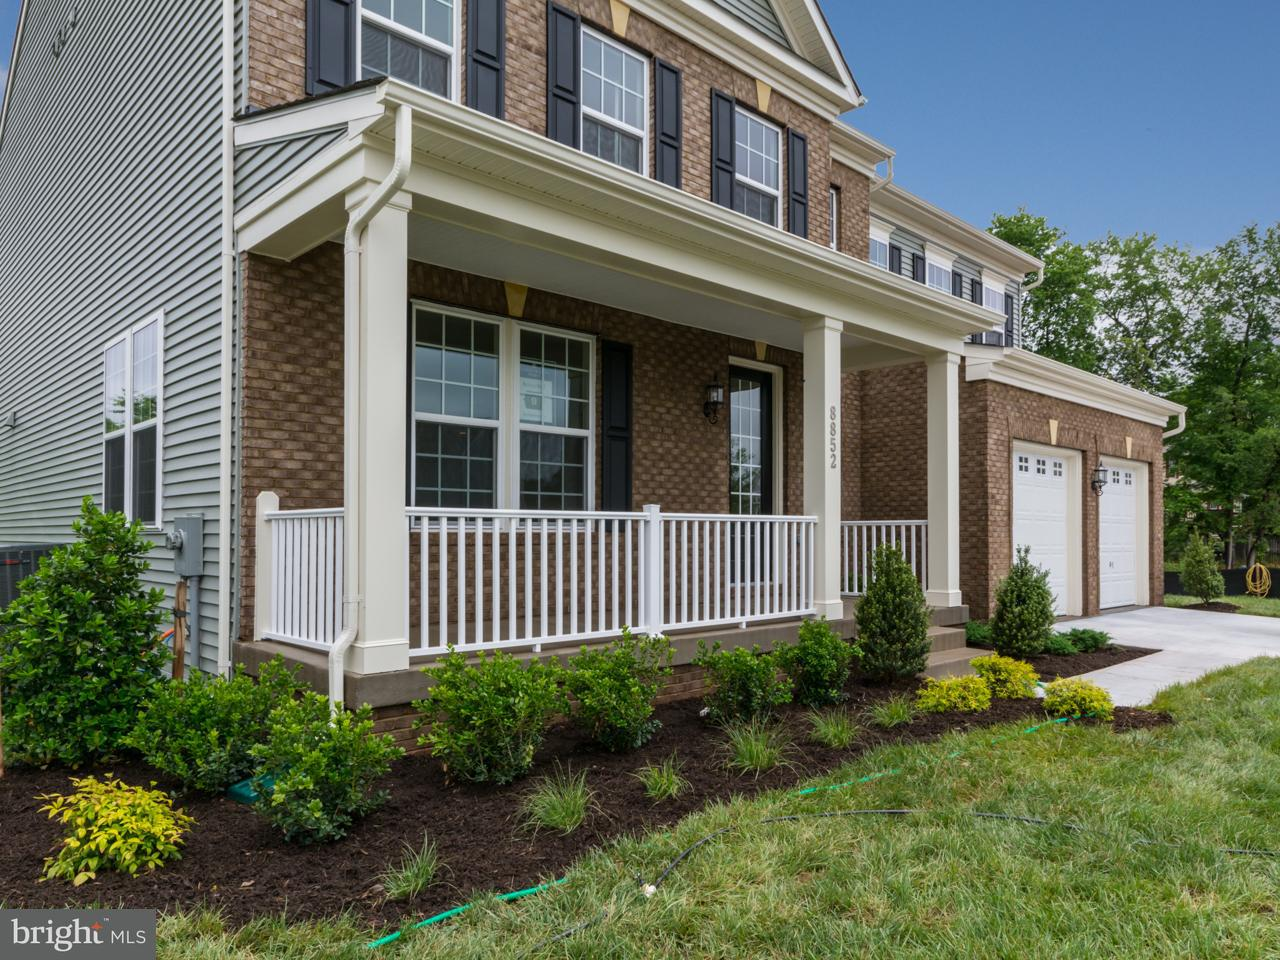 Single Family Home for Sale at 8852 OLD DOMINION HUNT Circle 8852 OLD DOMINION HUNT Circle Manassas, Virginia 20112 United States